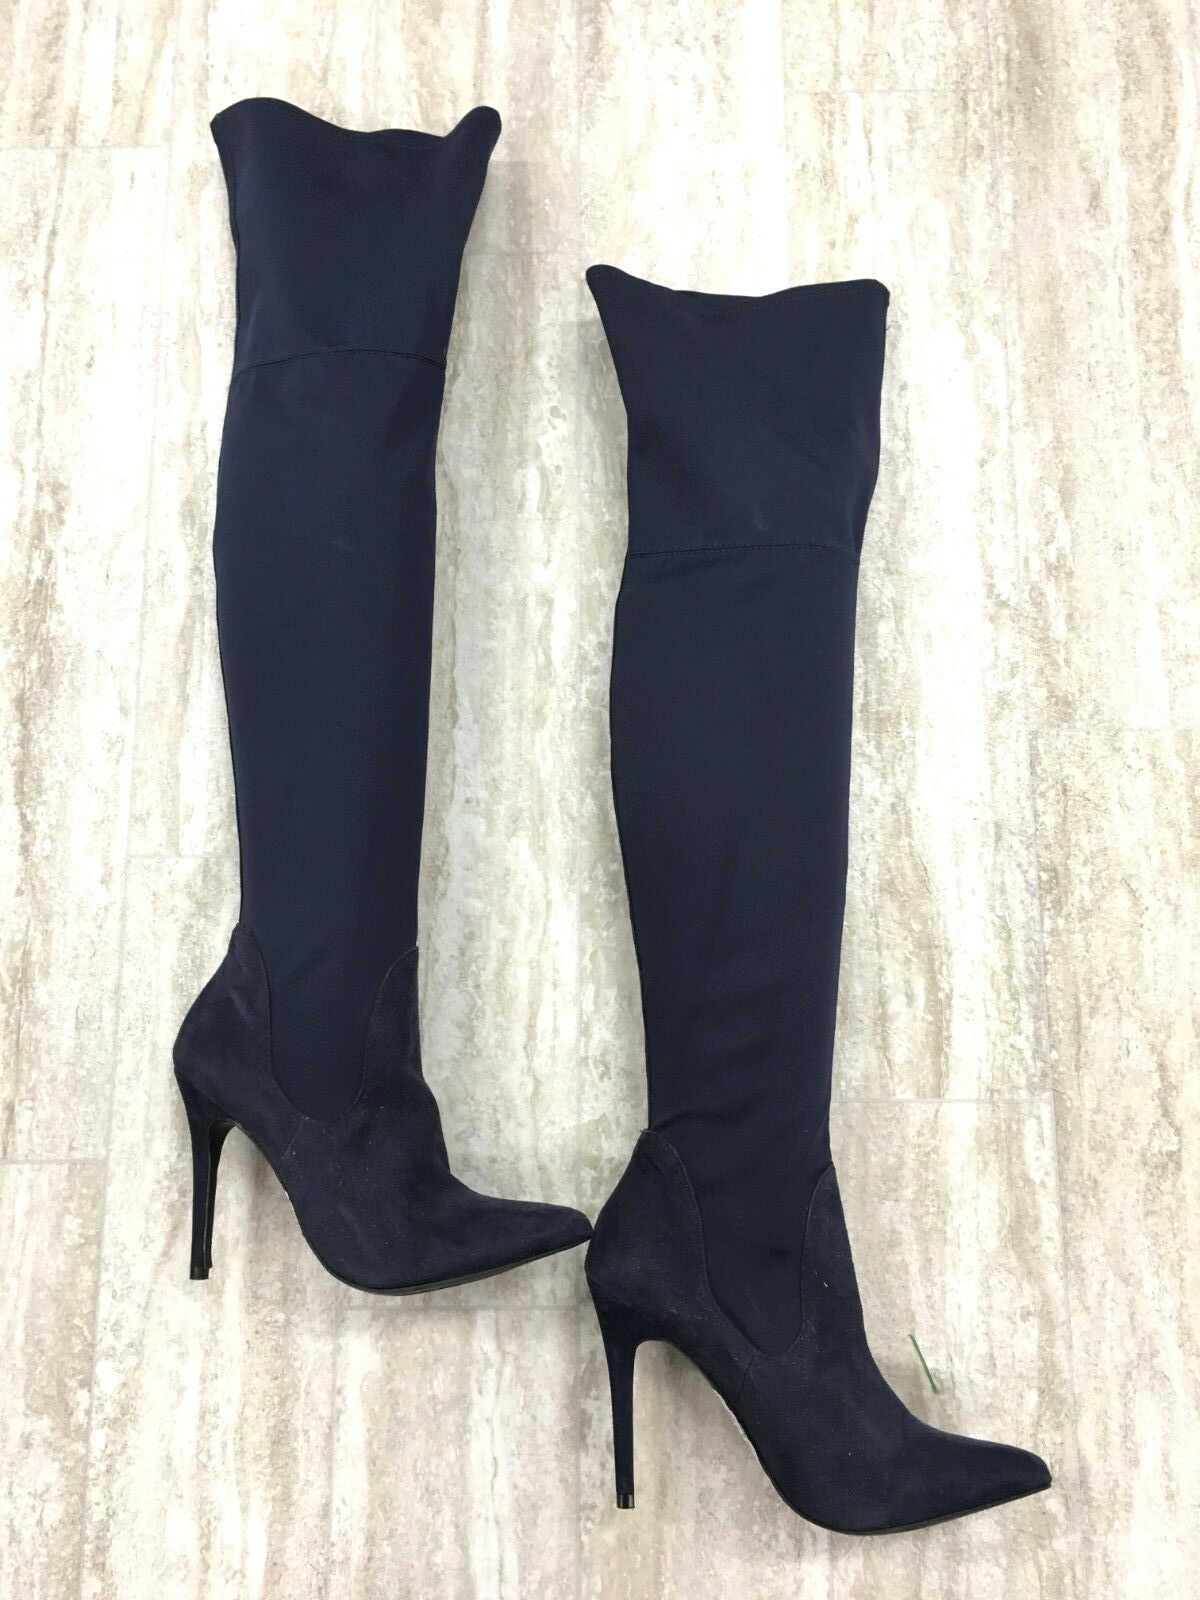 Charles by Charles David Stretch Thigh High Navy Boots Size  6.5